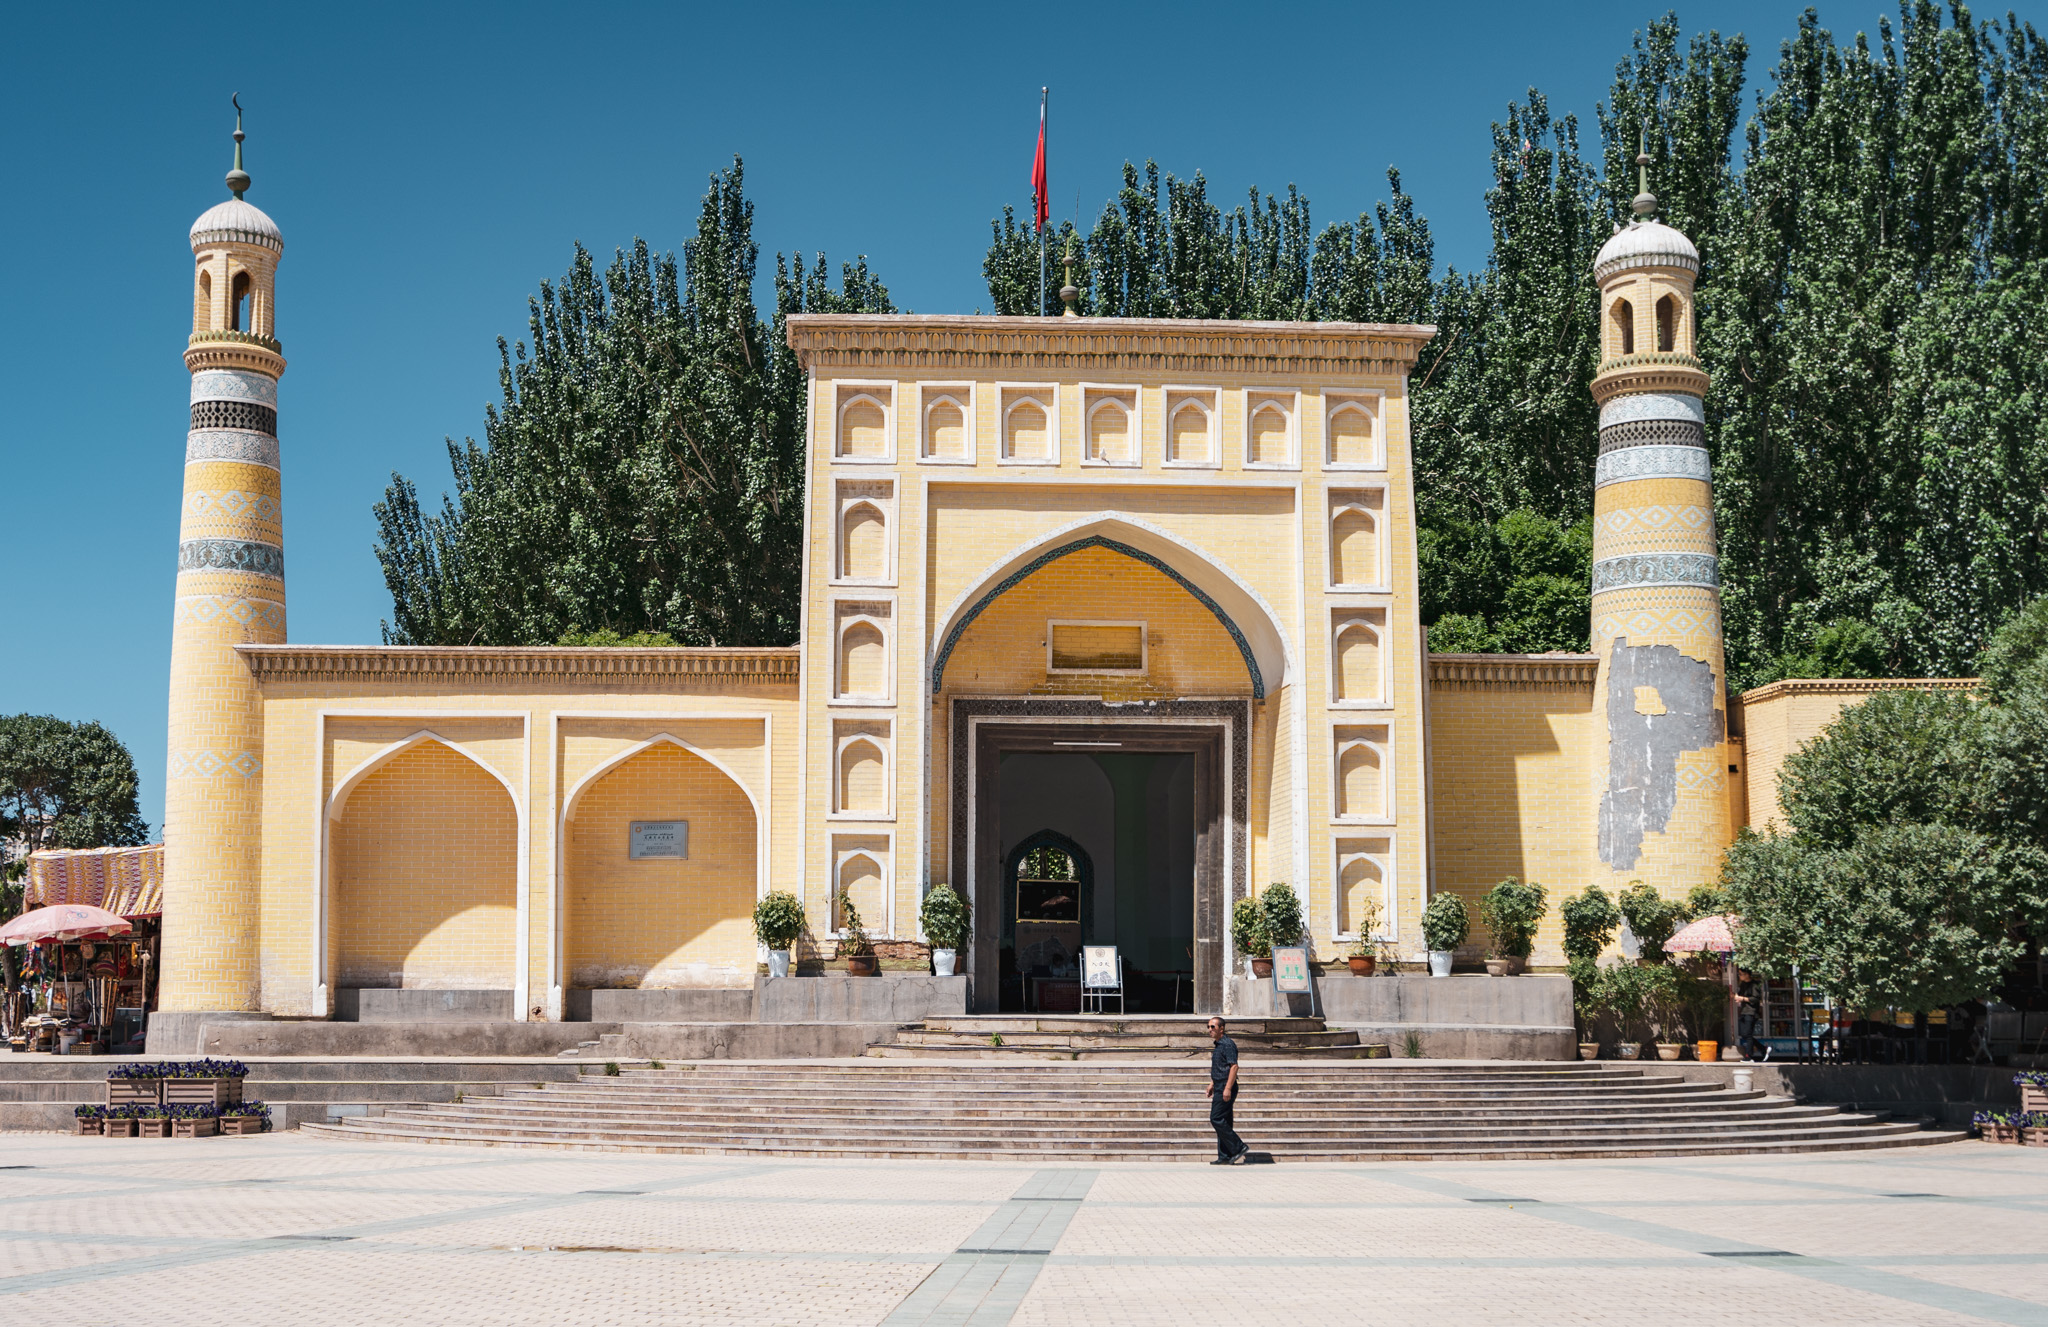 The Id Kah Mosque in Kashgar, China